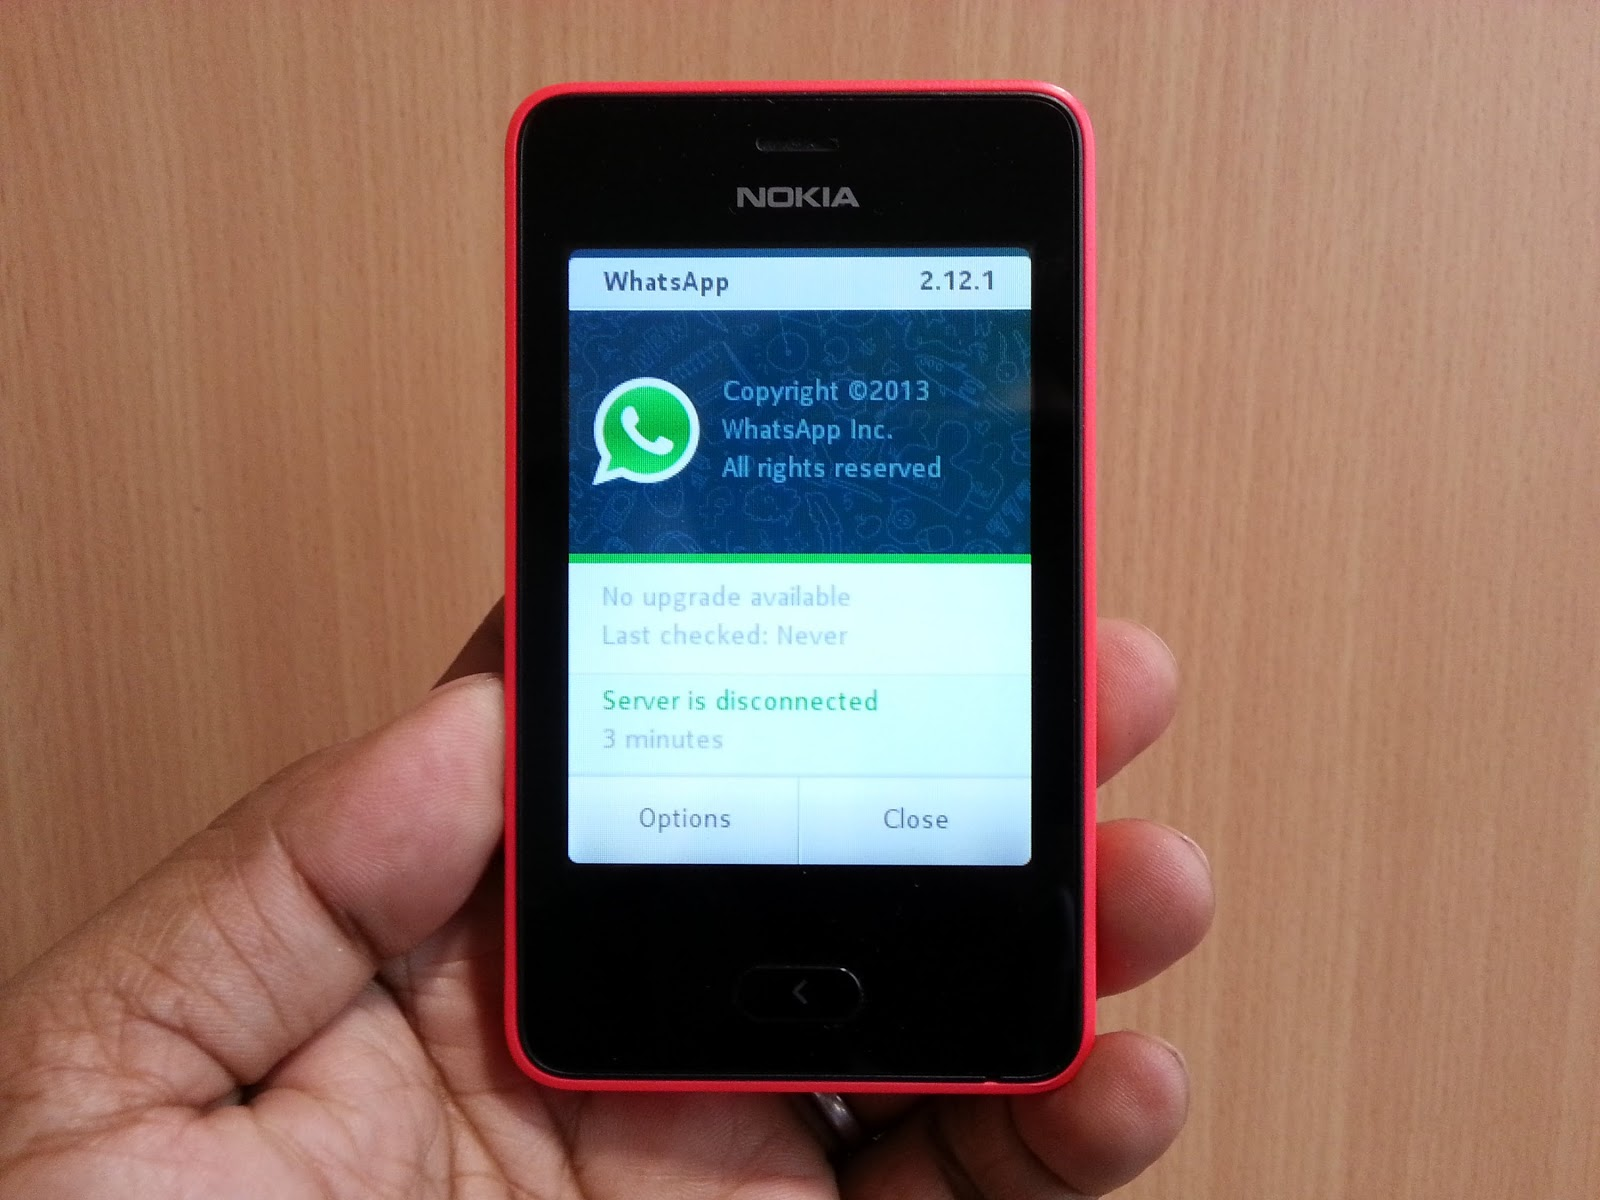 download whatsapp app for nokia c3-00